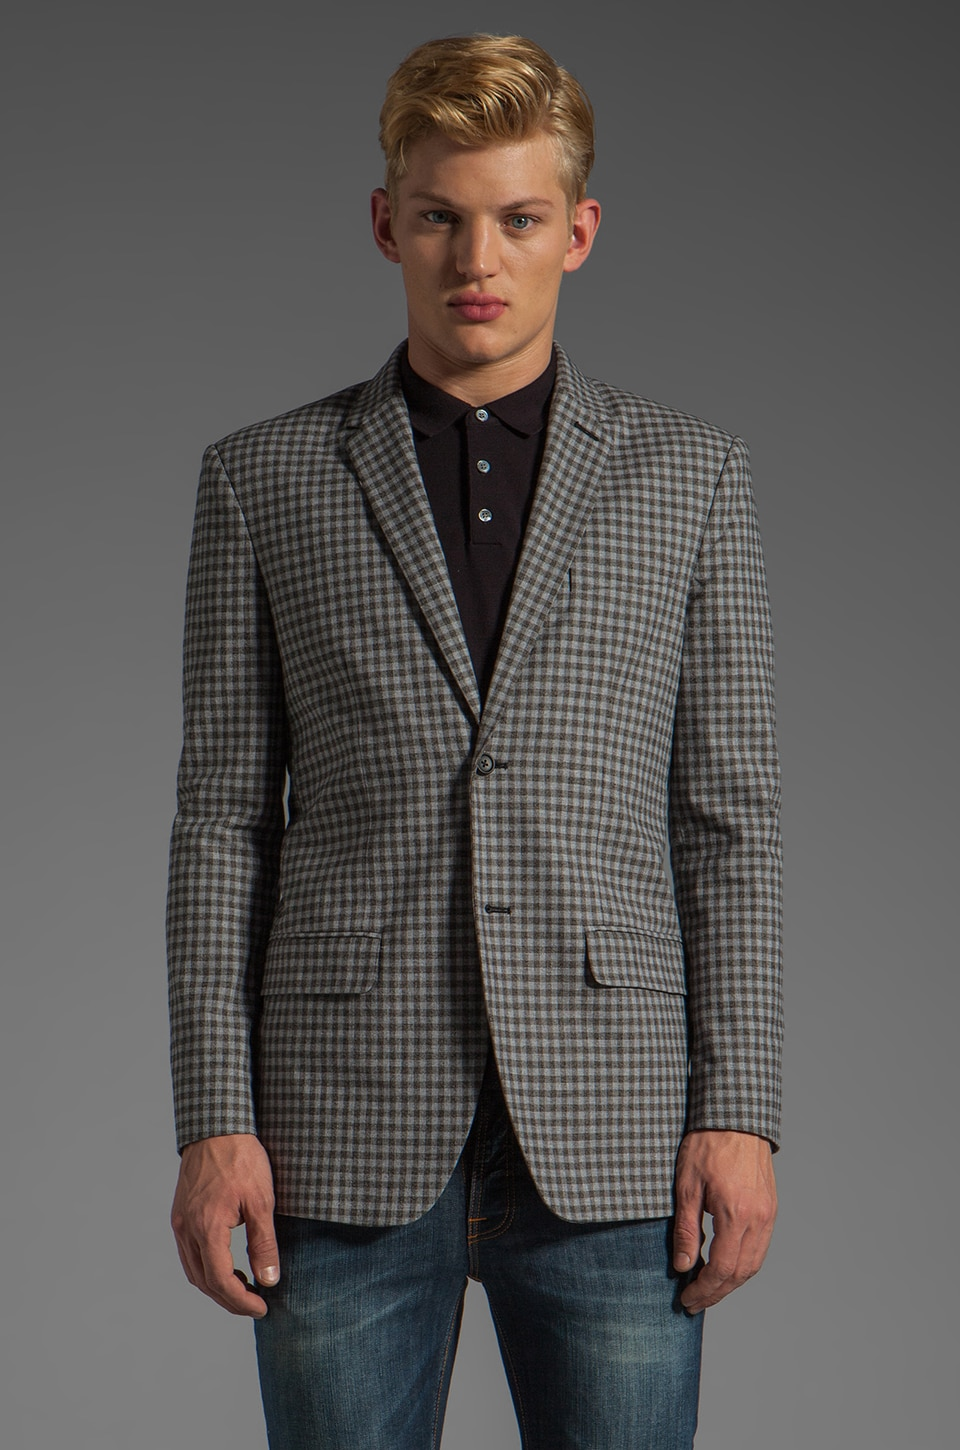 Marc by Marc Jacobs Bundy Plaid Blazer in Washed Ink Multi